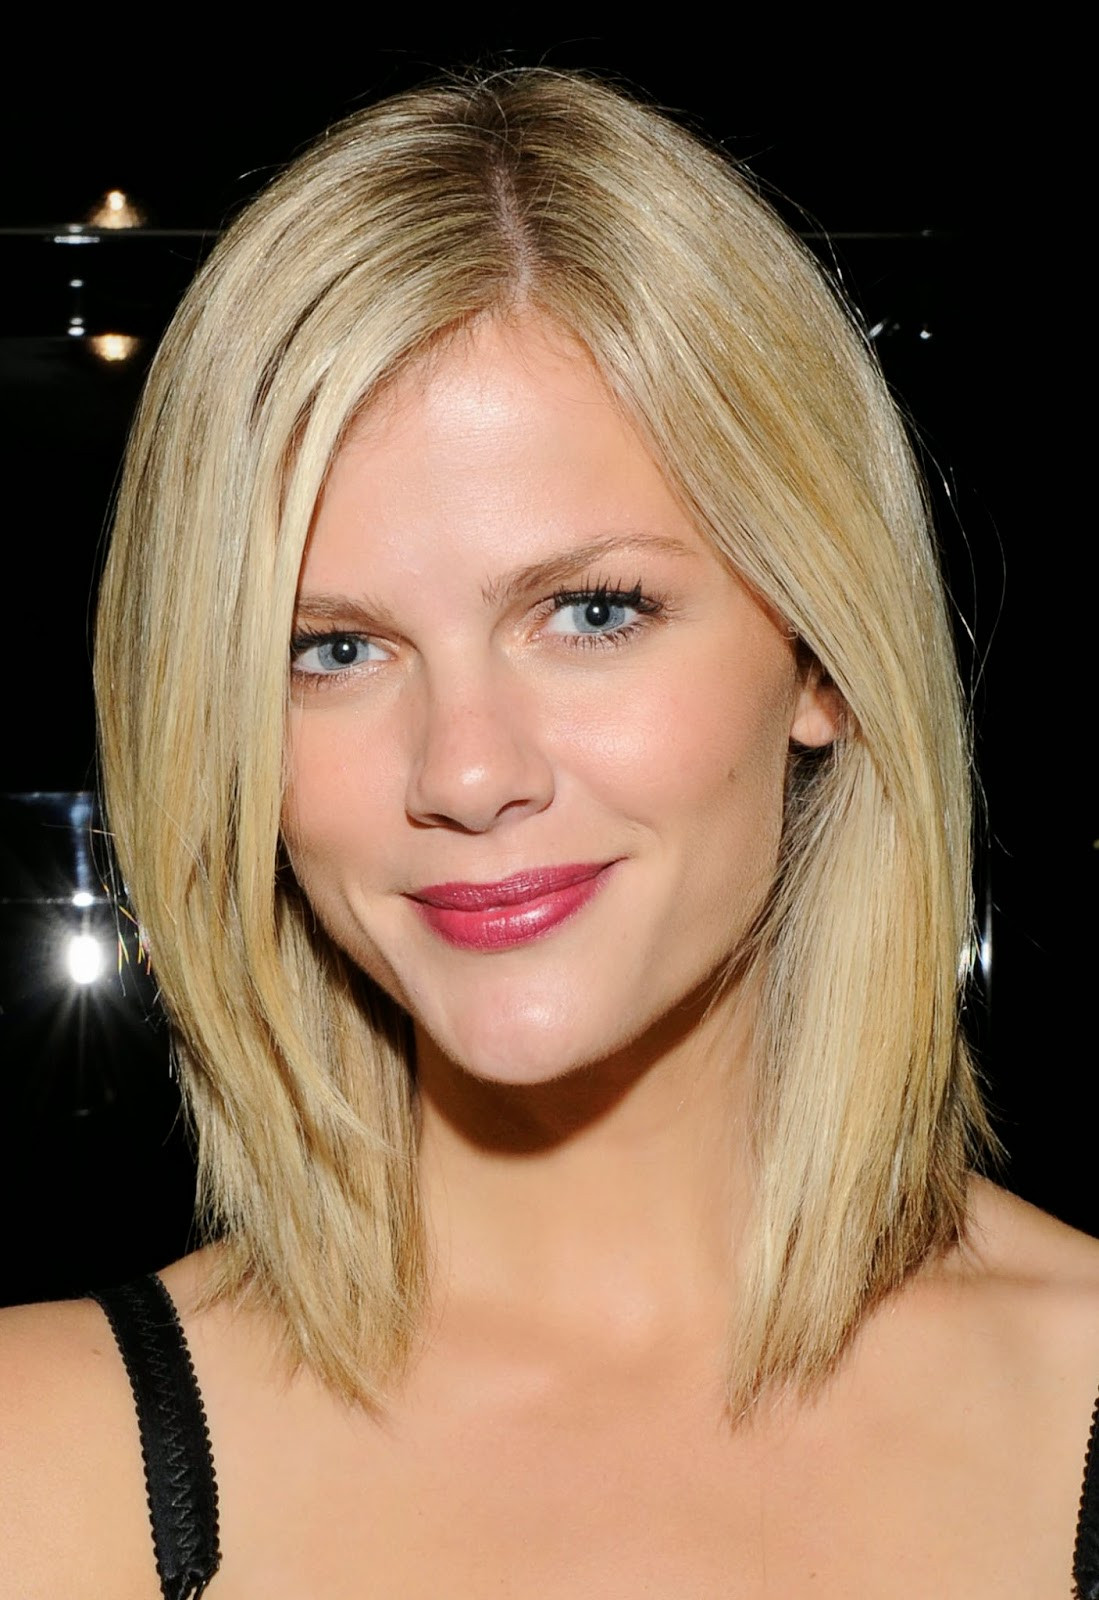 Best ideas about Hairstyles For Bob Cut . Save or Pin Wedge Hairstyle 2014 Hairstyles For Women Now.